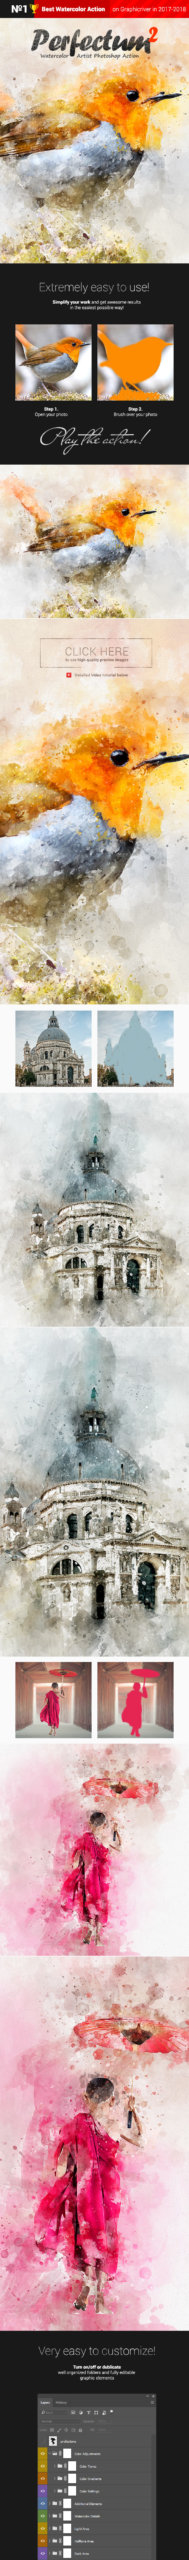 Watercolor - Perfectum 2 - Photoshop Action